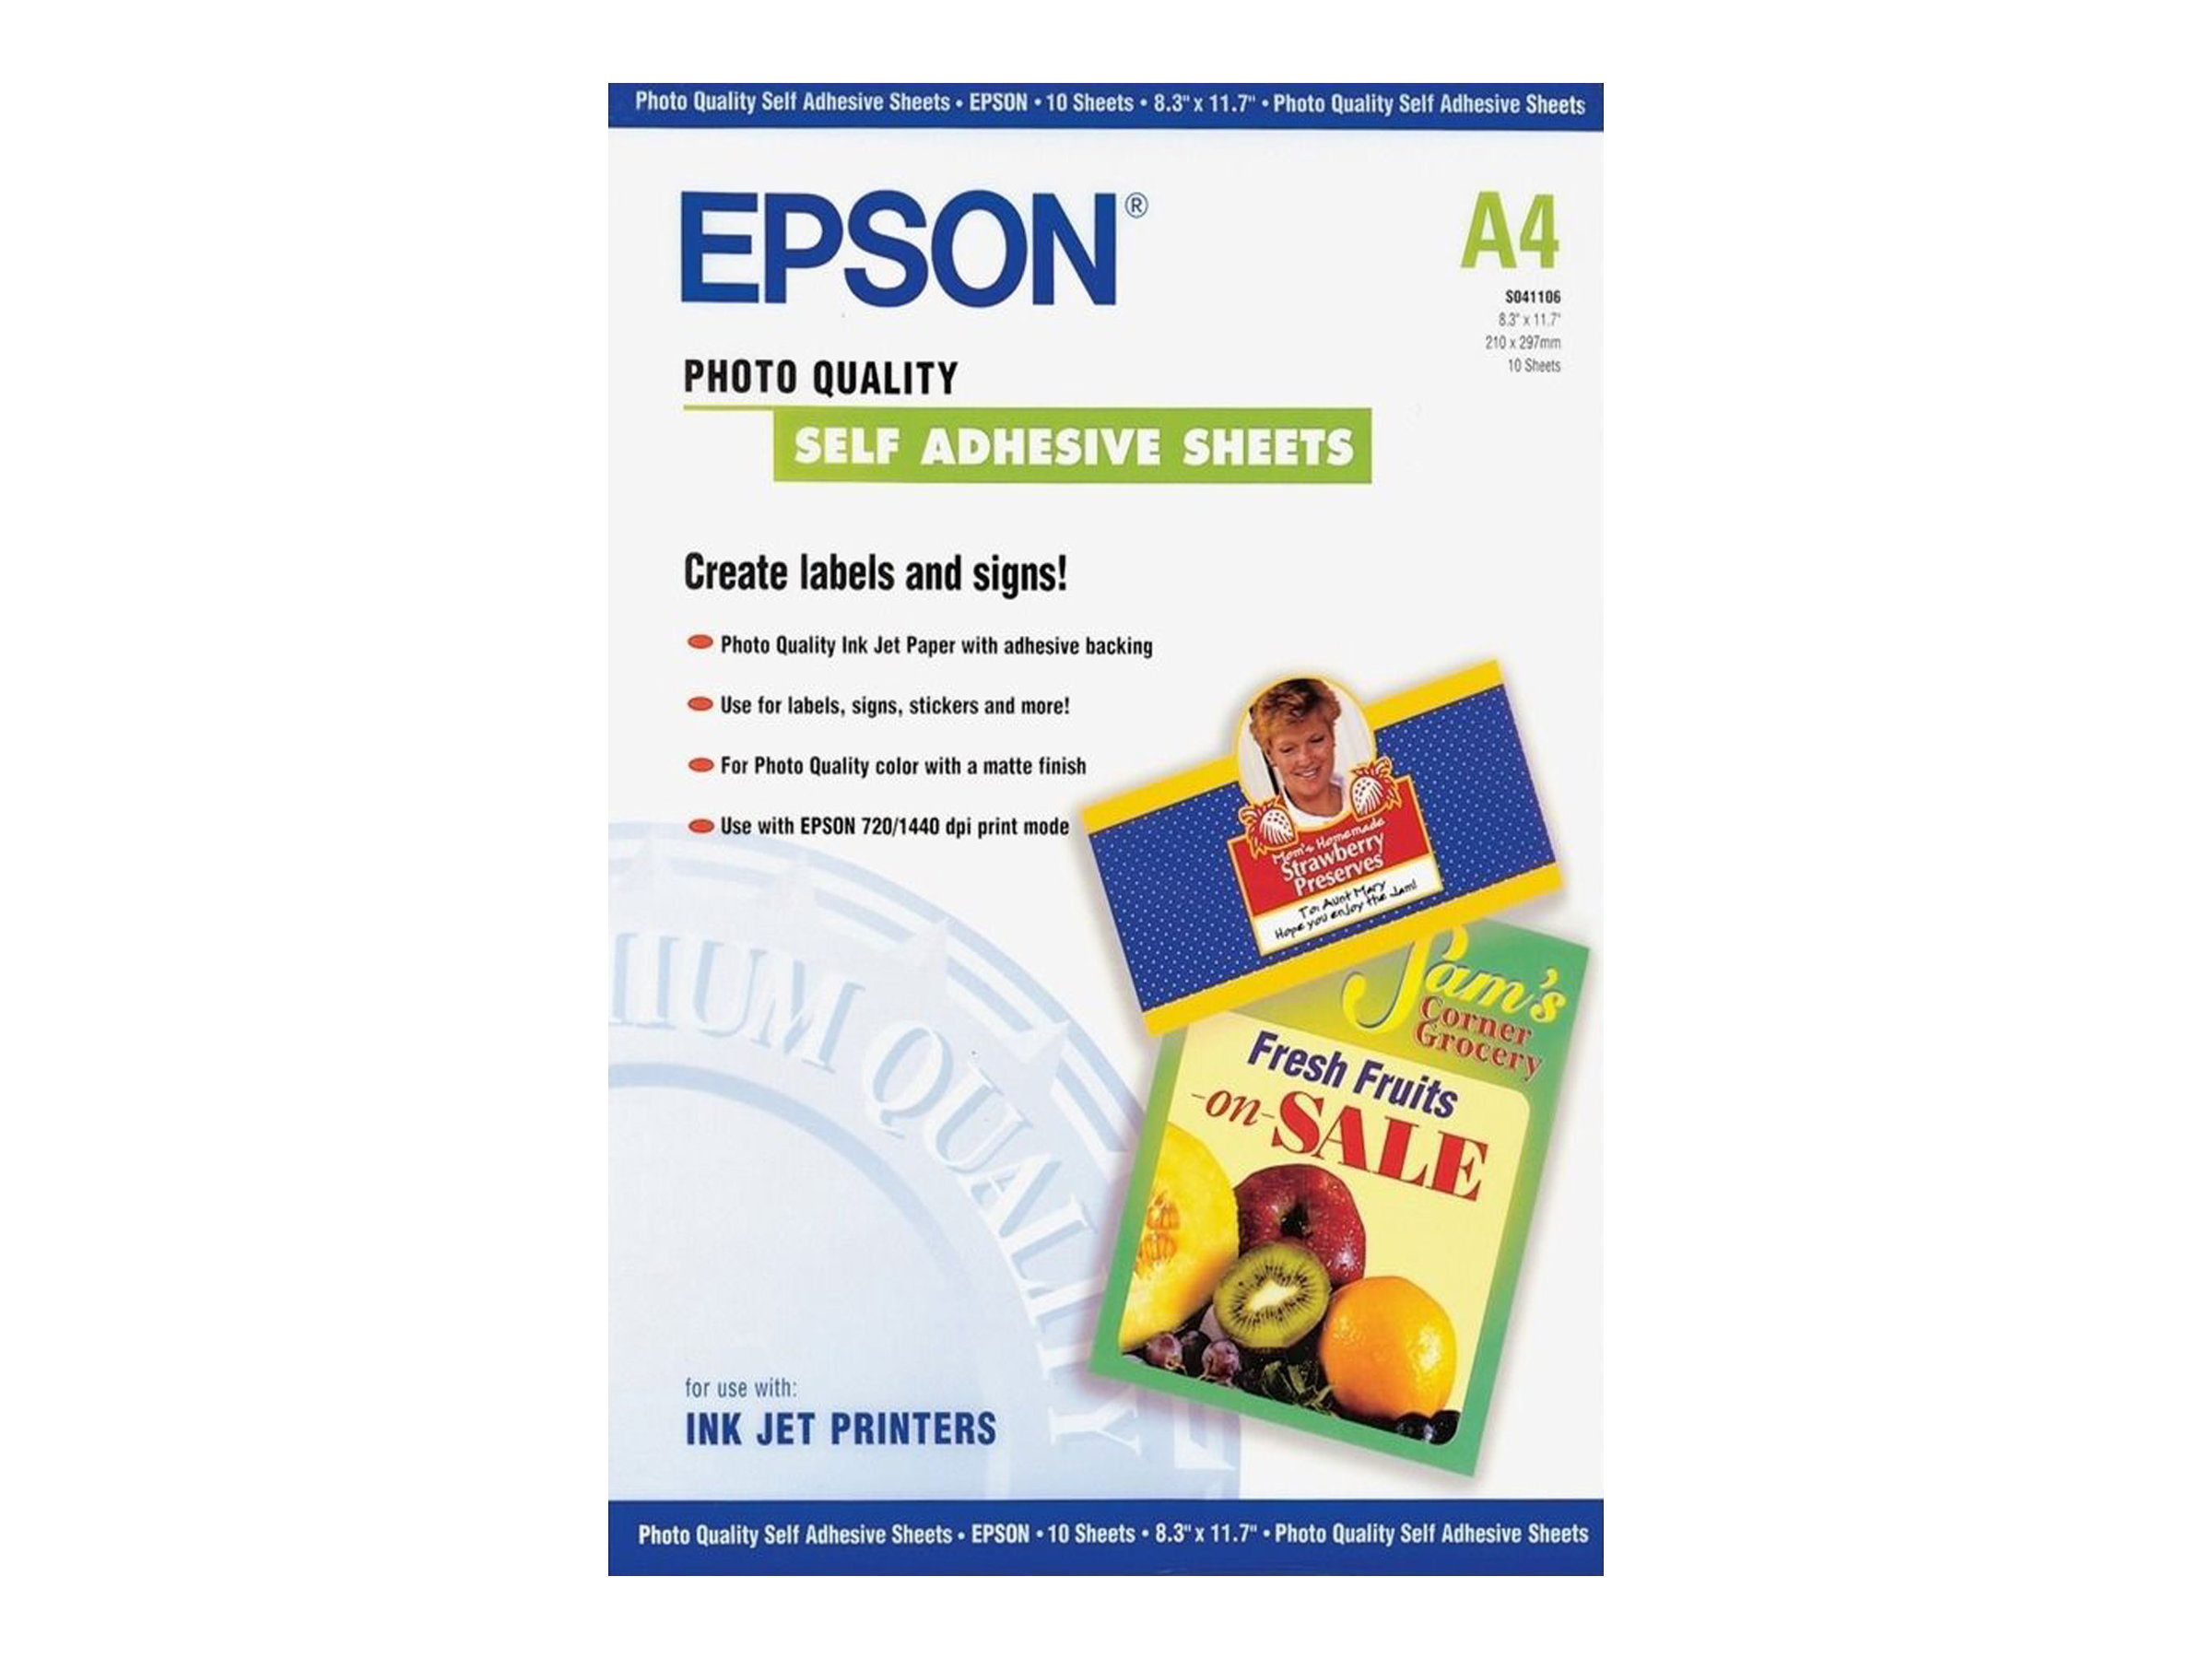 Epson Photo Quality Self Adhesive Sheets - Selbstklebend - A4 (210 x 297 mm) - 167 g/m² - 10 Stck. Blätter - für Expression Home